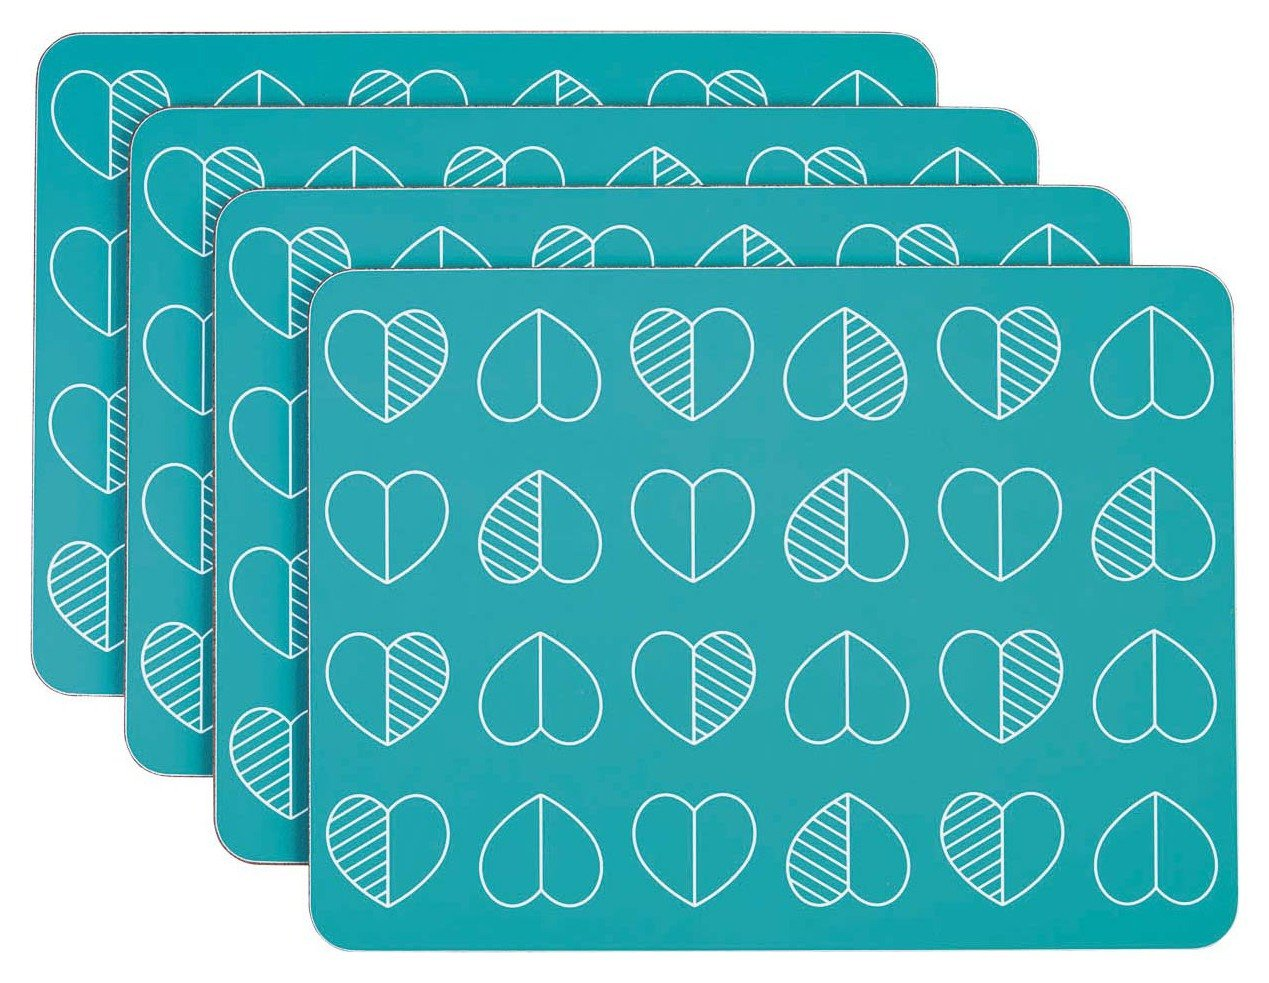 Image of Beau and Elliot Outline Set of 4 Placemats - Teal.